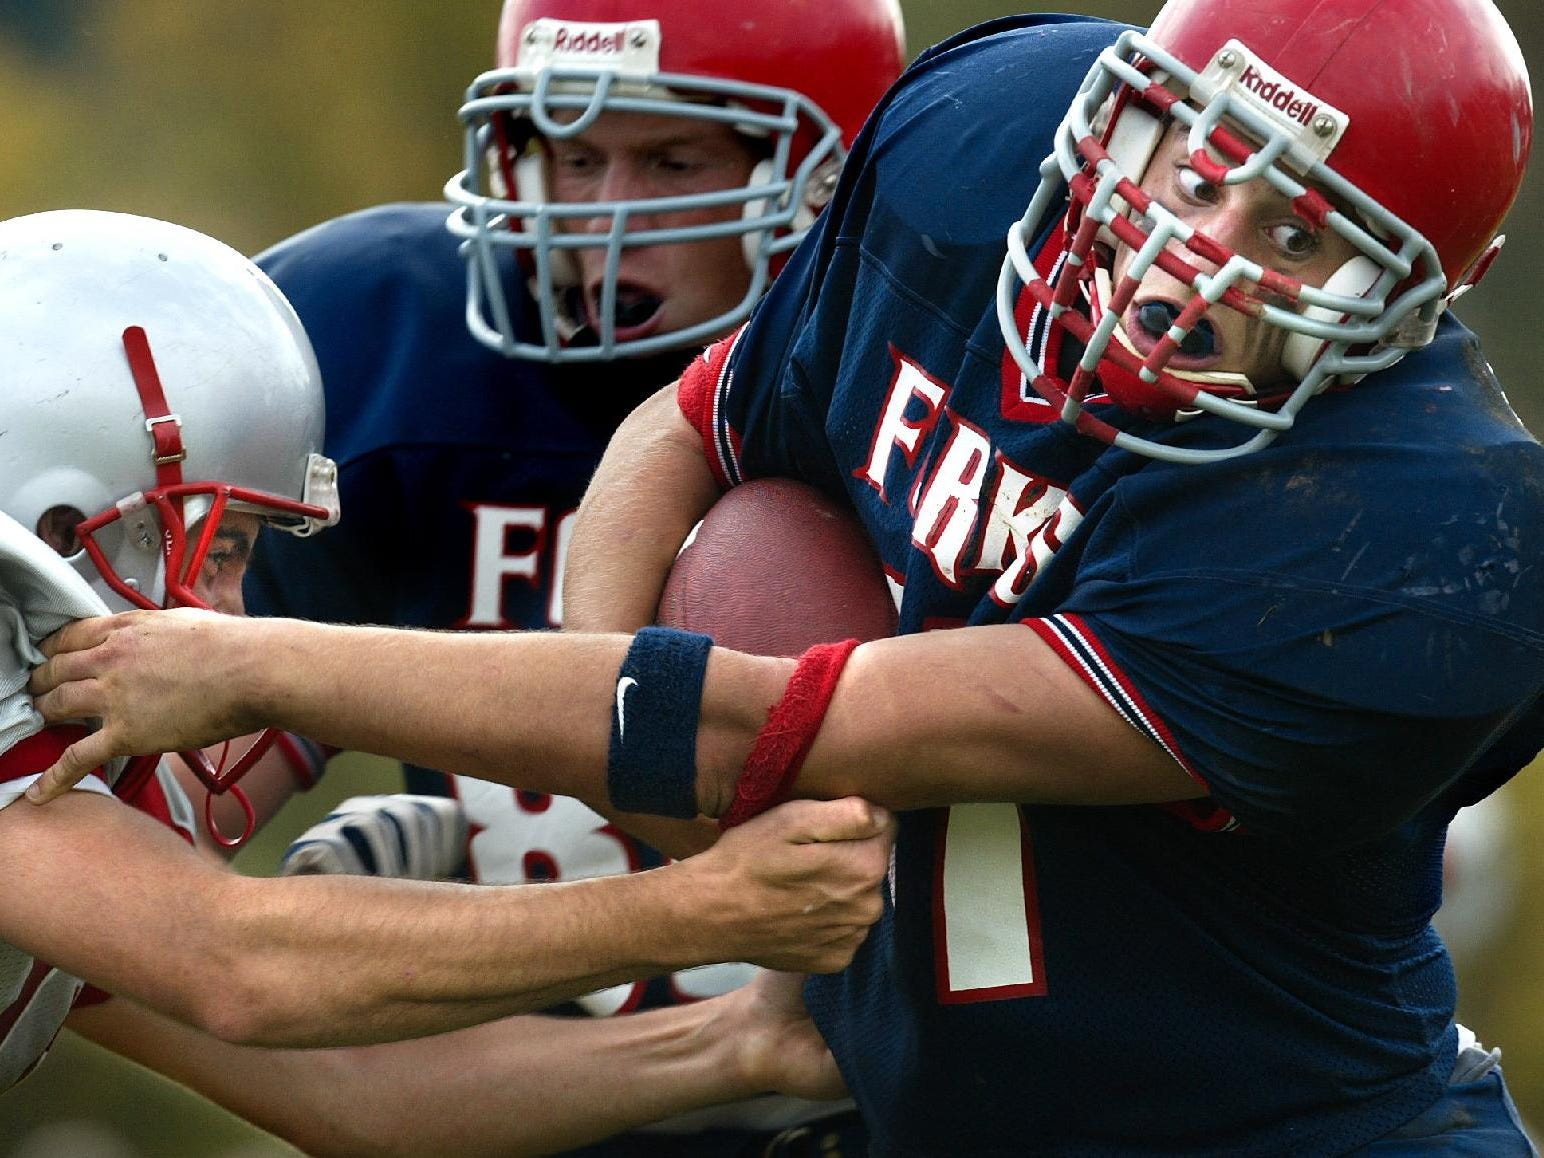 Chenango Forks #37, Joe Babcock gets yardage as he is being tackled by Chenango Valley #15, Greg Baxter in the second quarter at Chenango Forks High School.